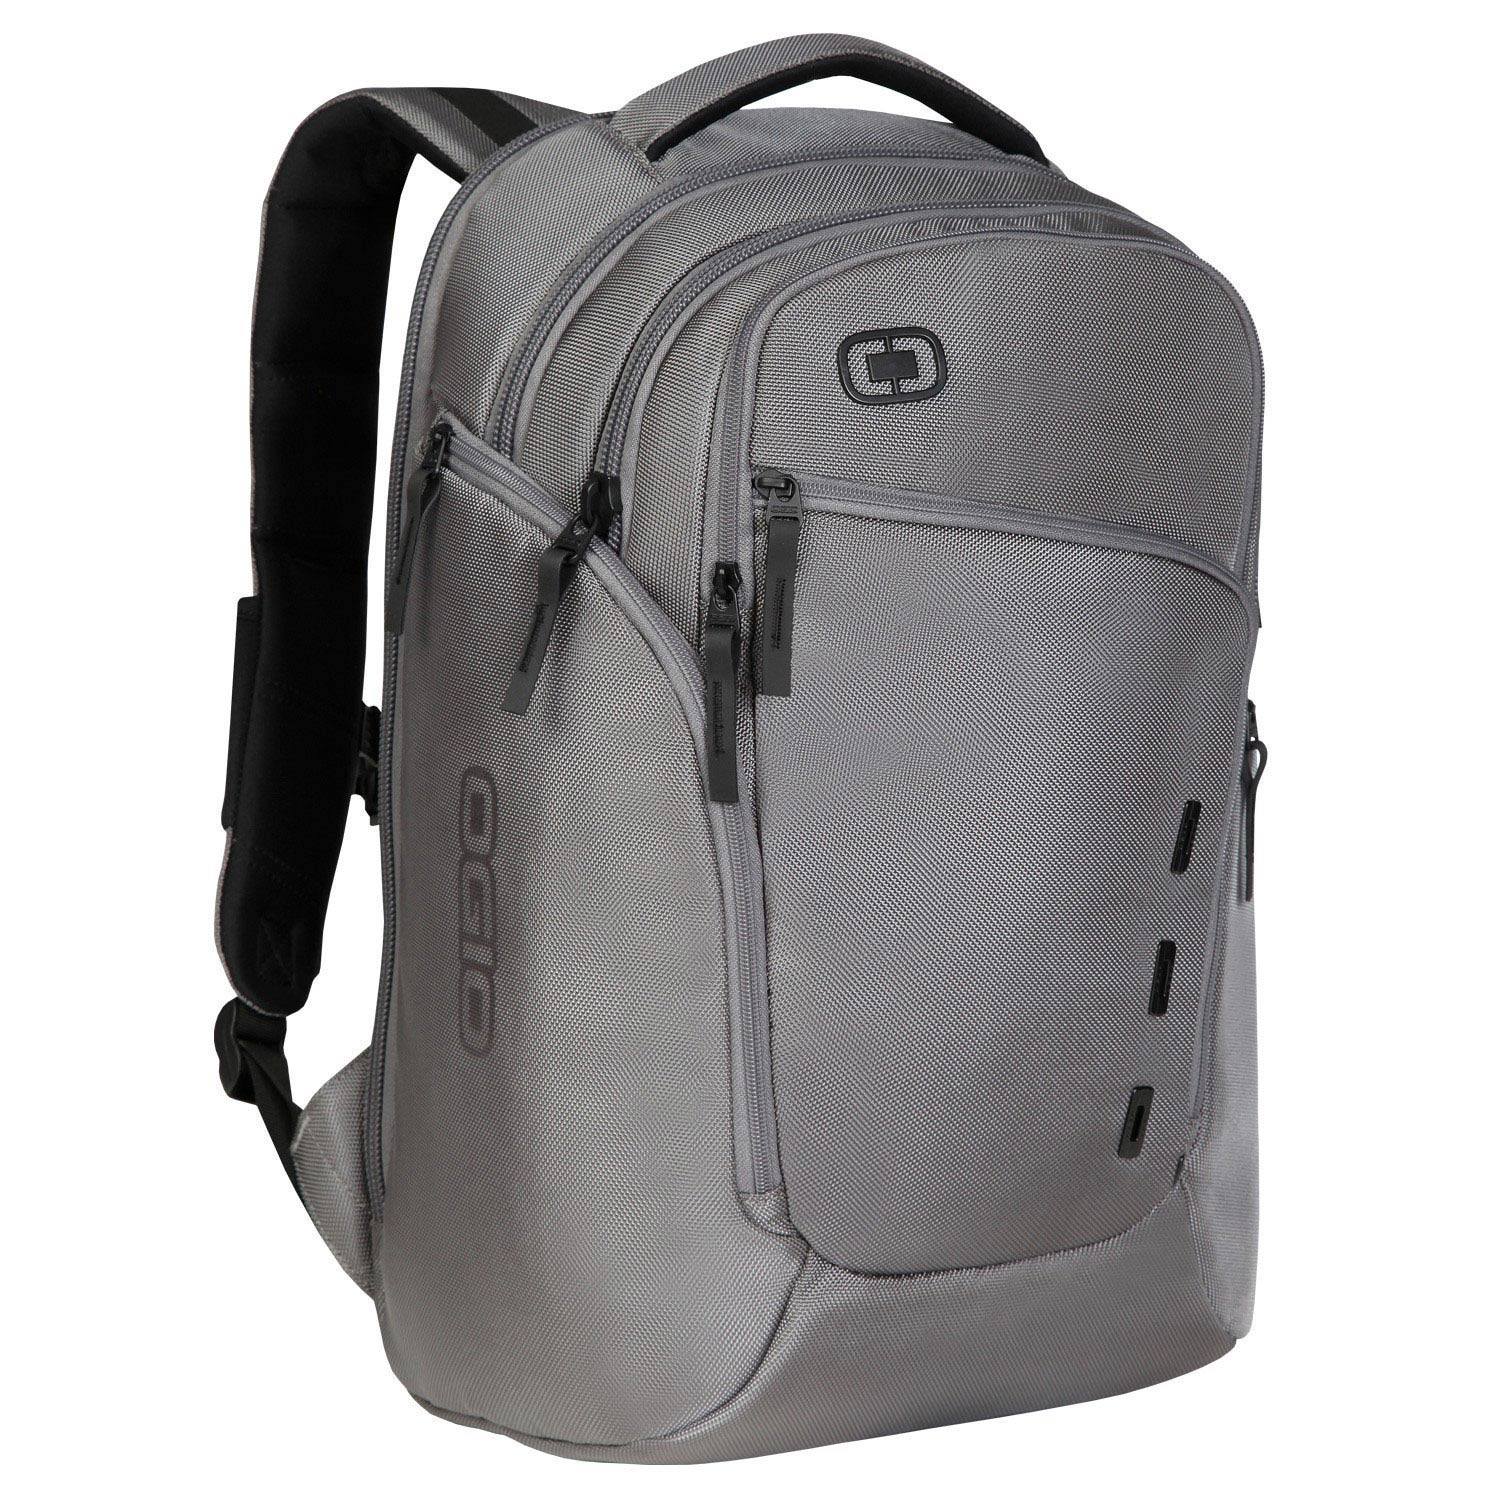 Ogio Backpacks Uk - Backpack Her